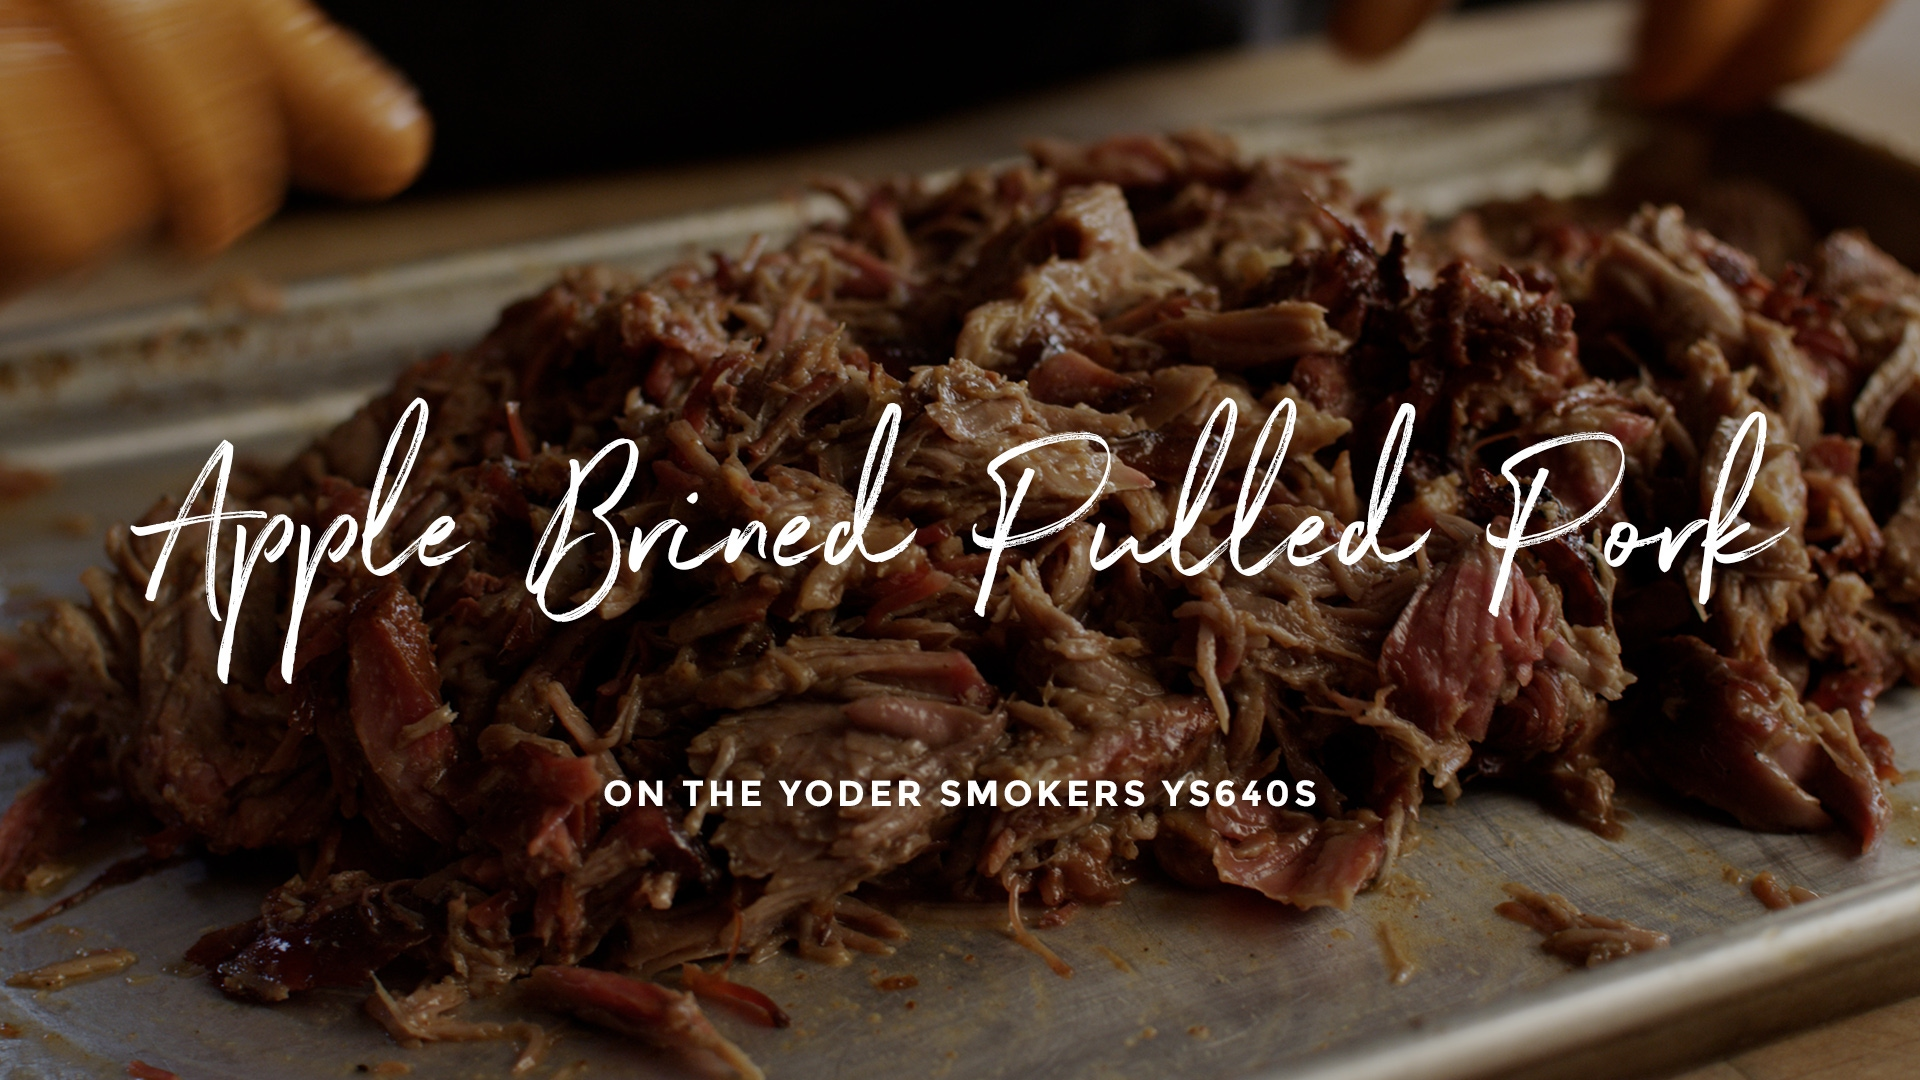 How to make Apple Brined Pulled Pork